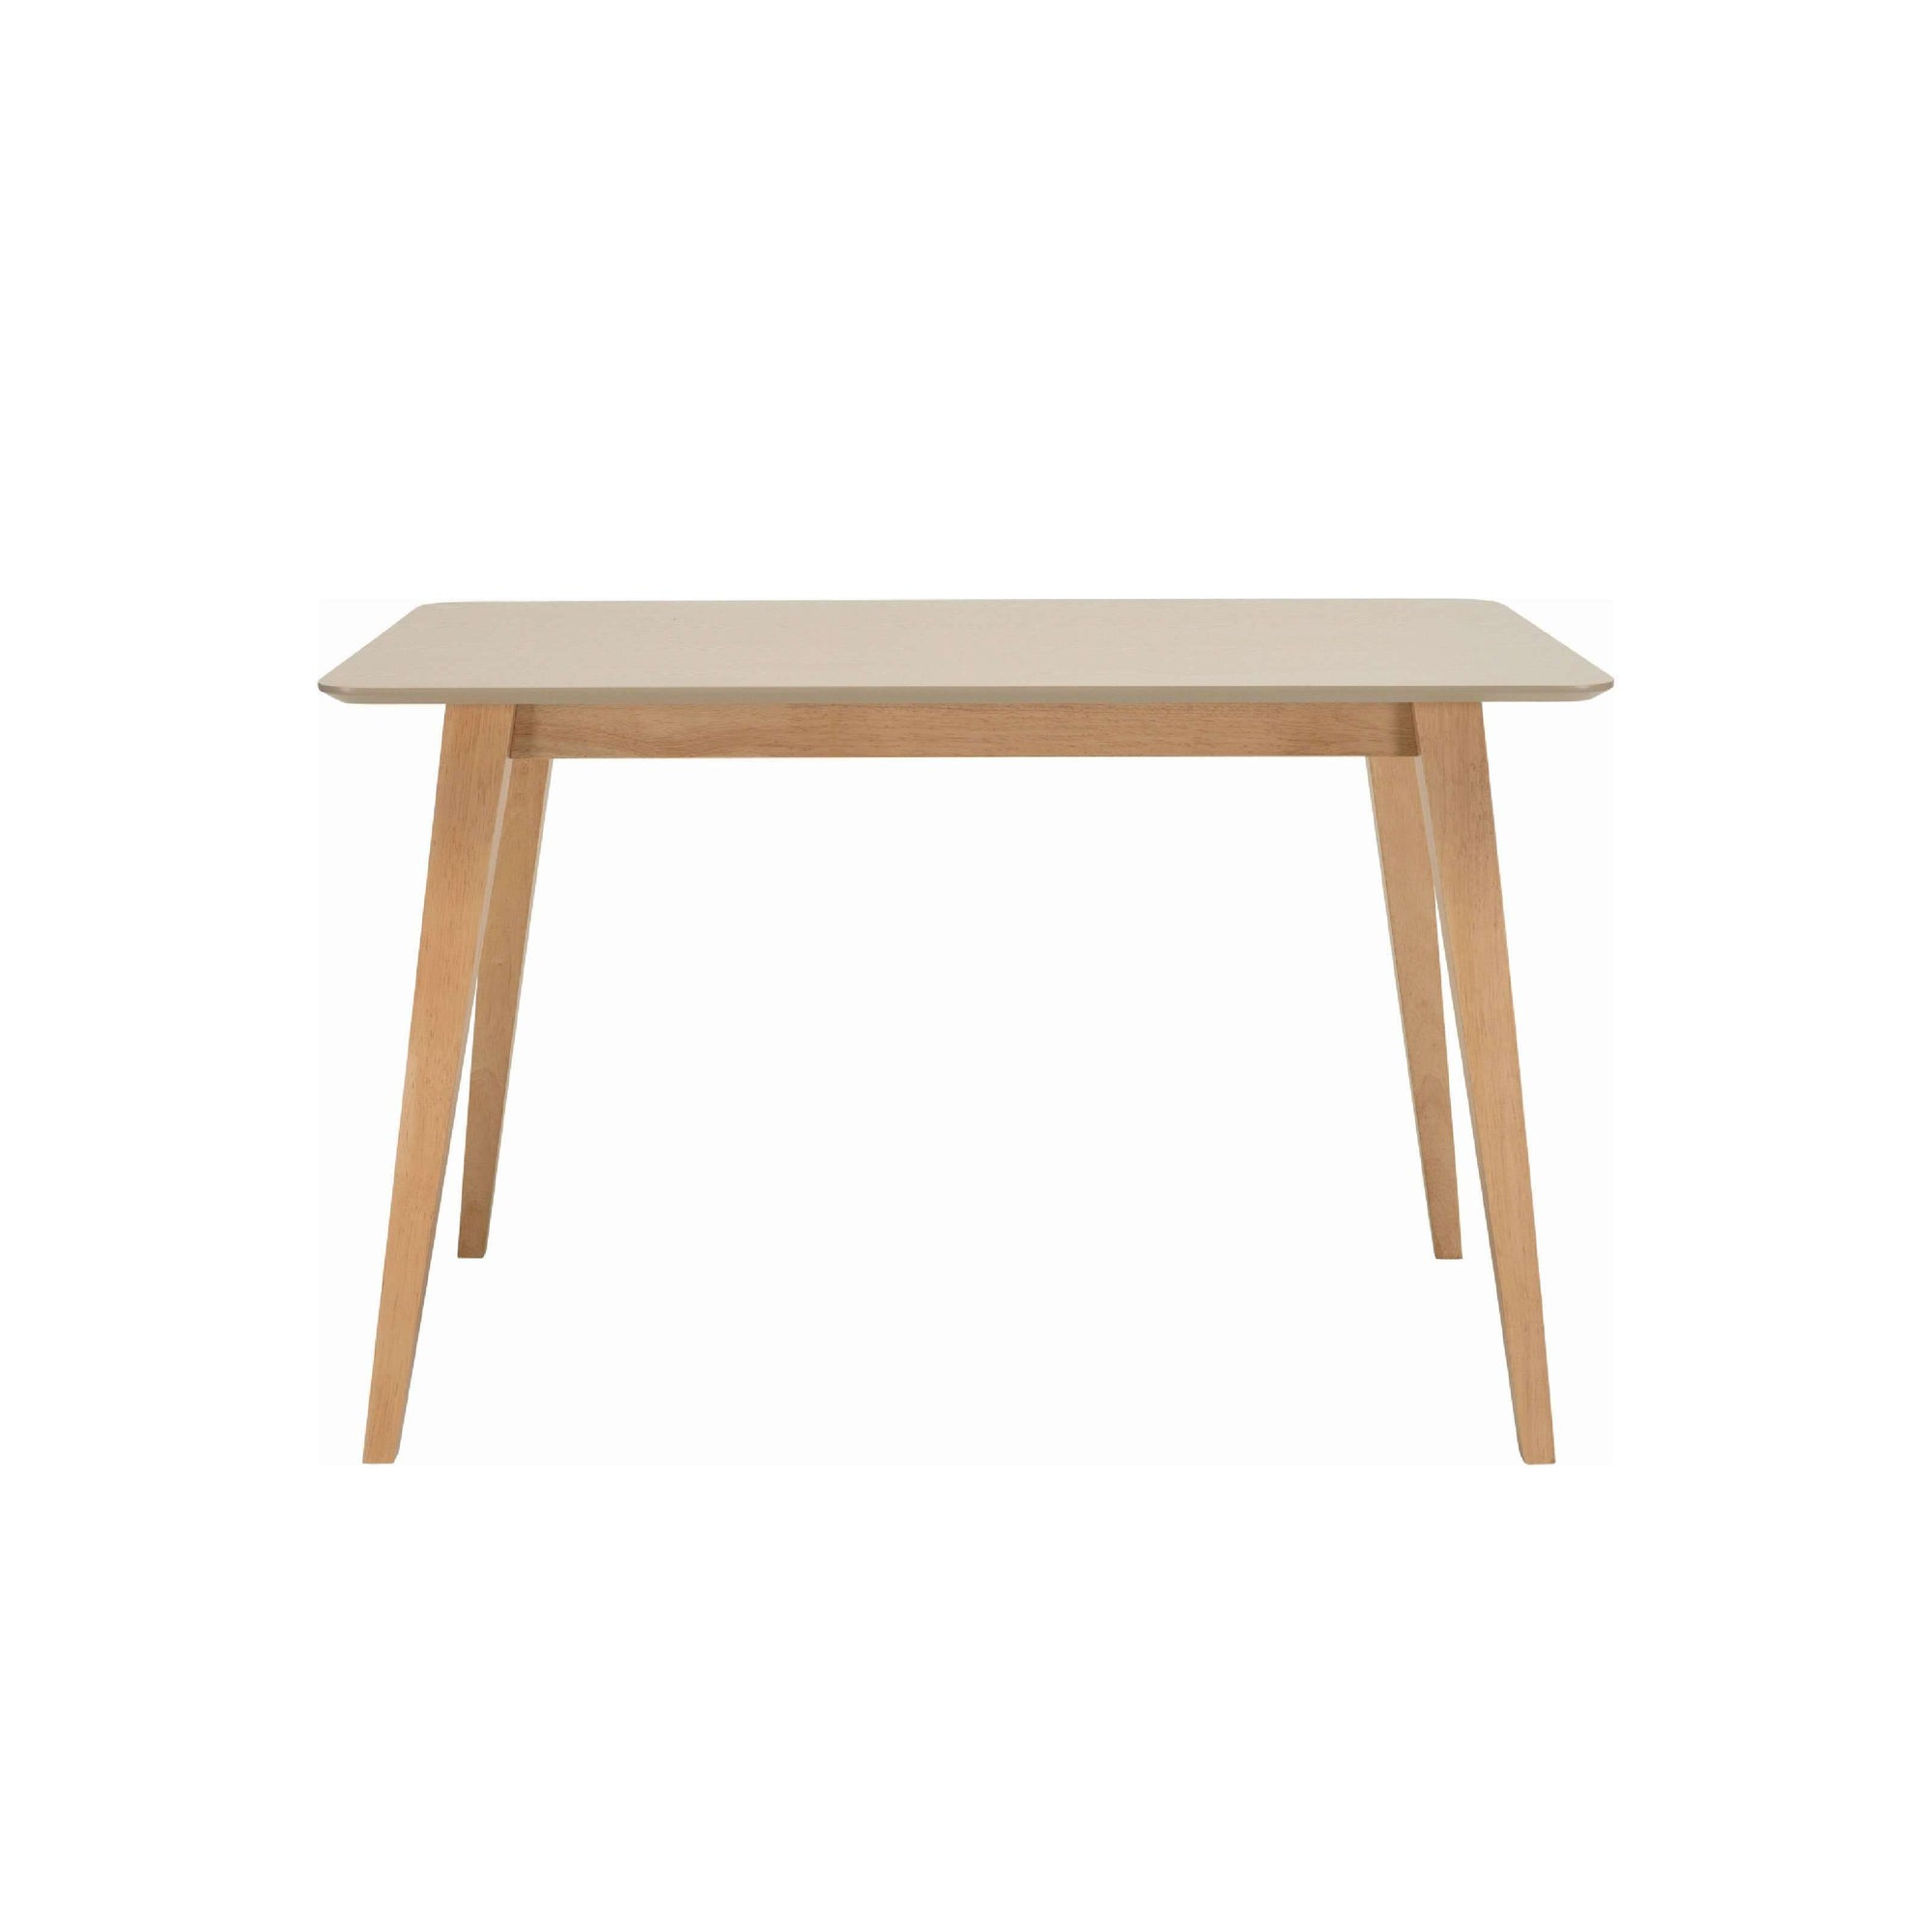 PLATON 1.2m Dining Table In Natural Colour Leg, Taupe Grey Colour Top